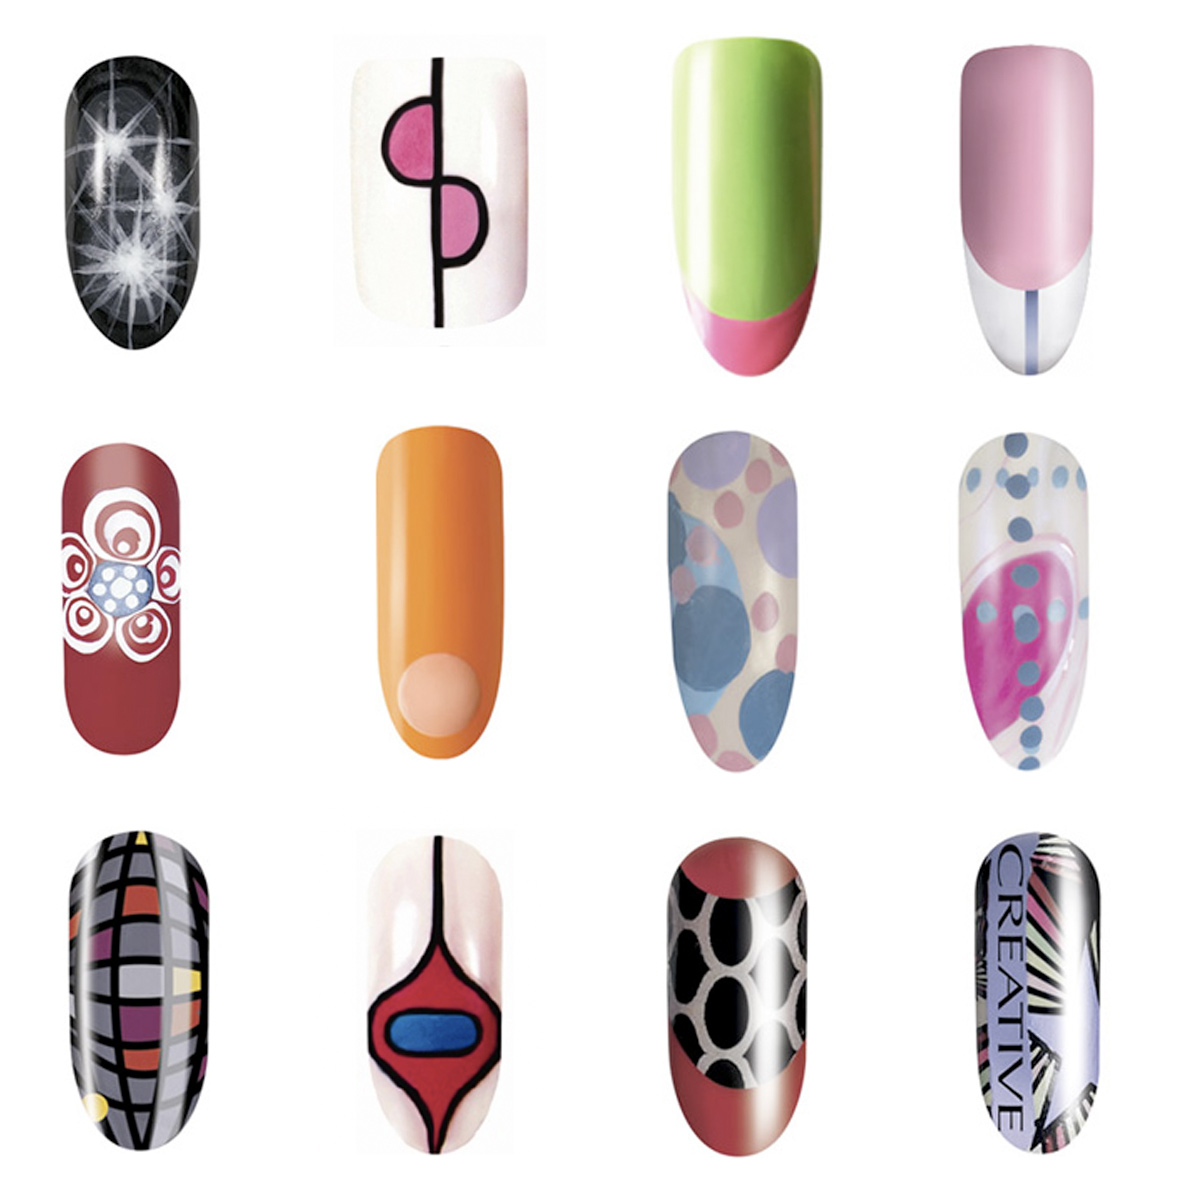 The most beautiful nail art or manicure masterpieces